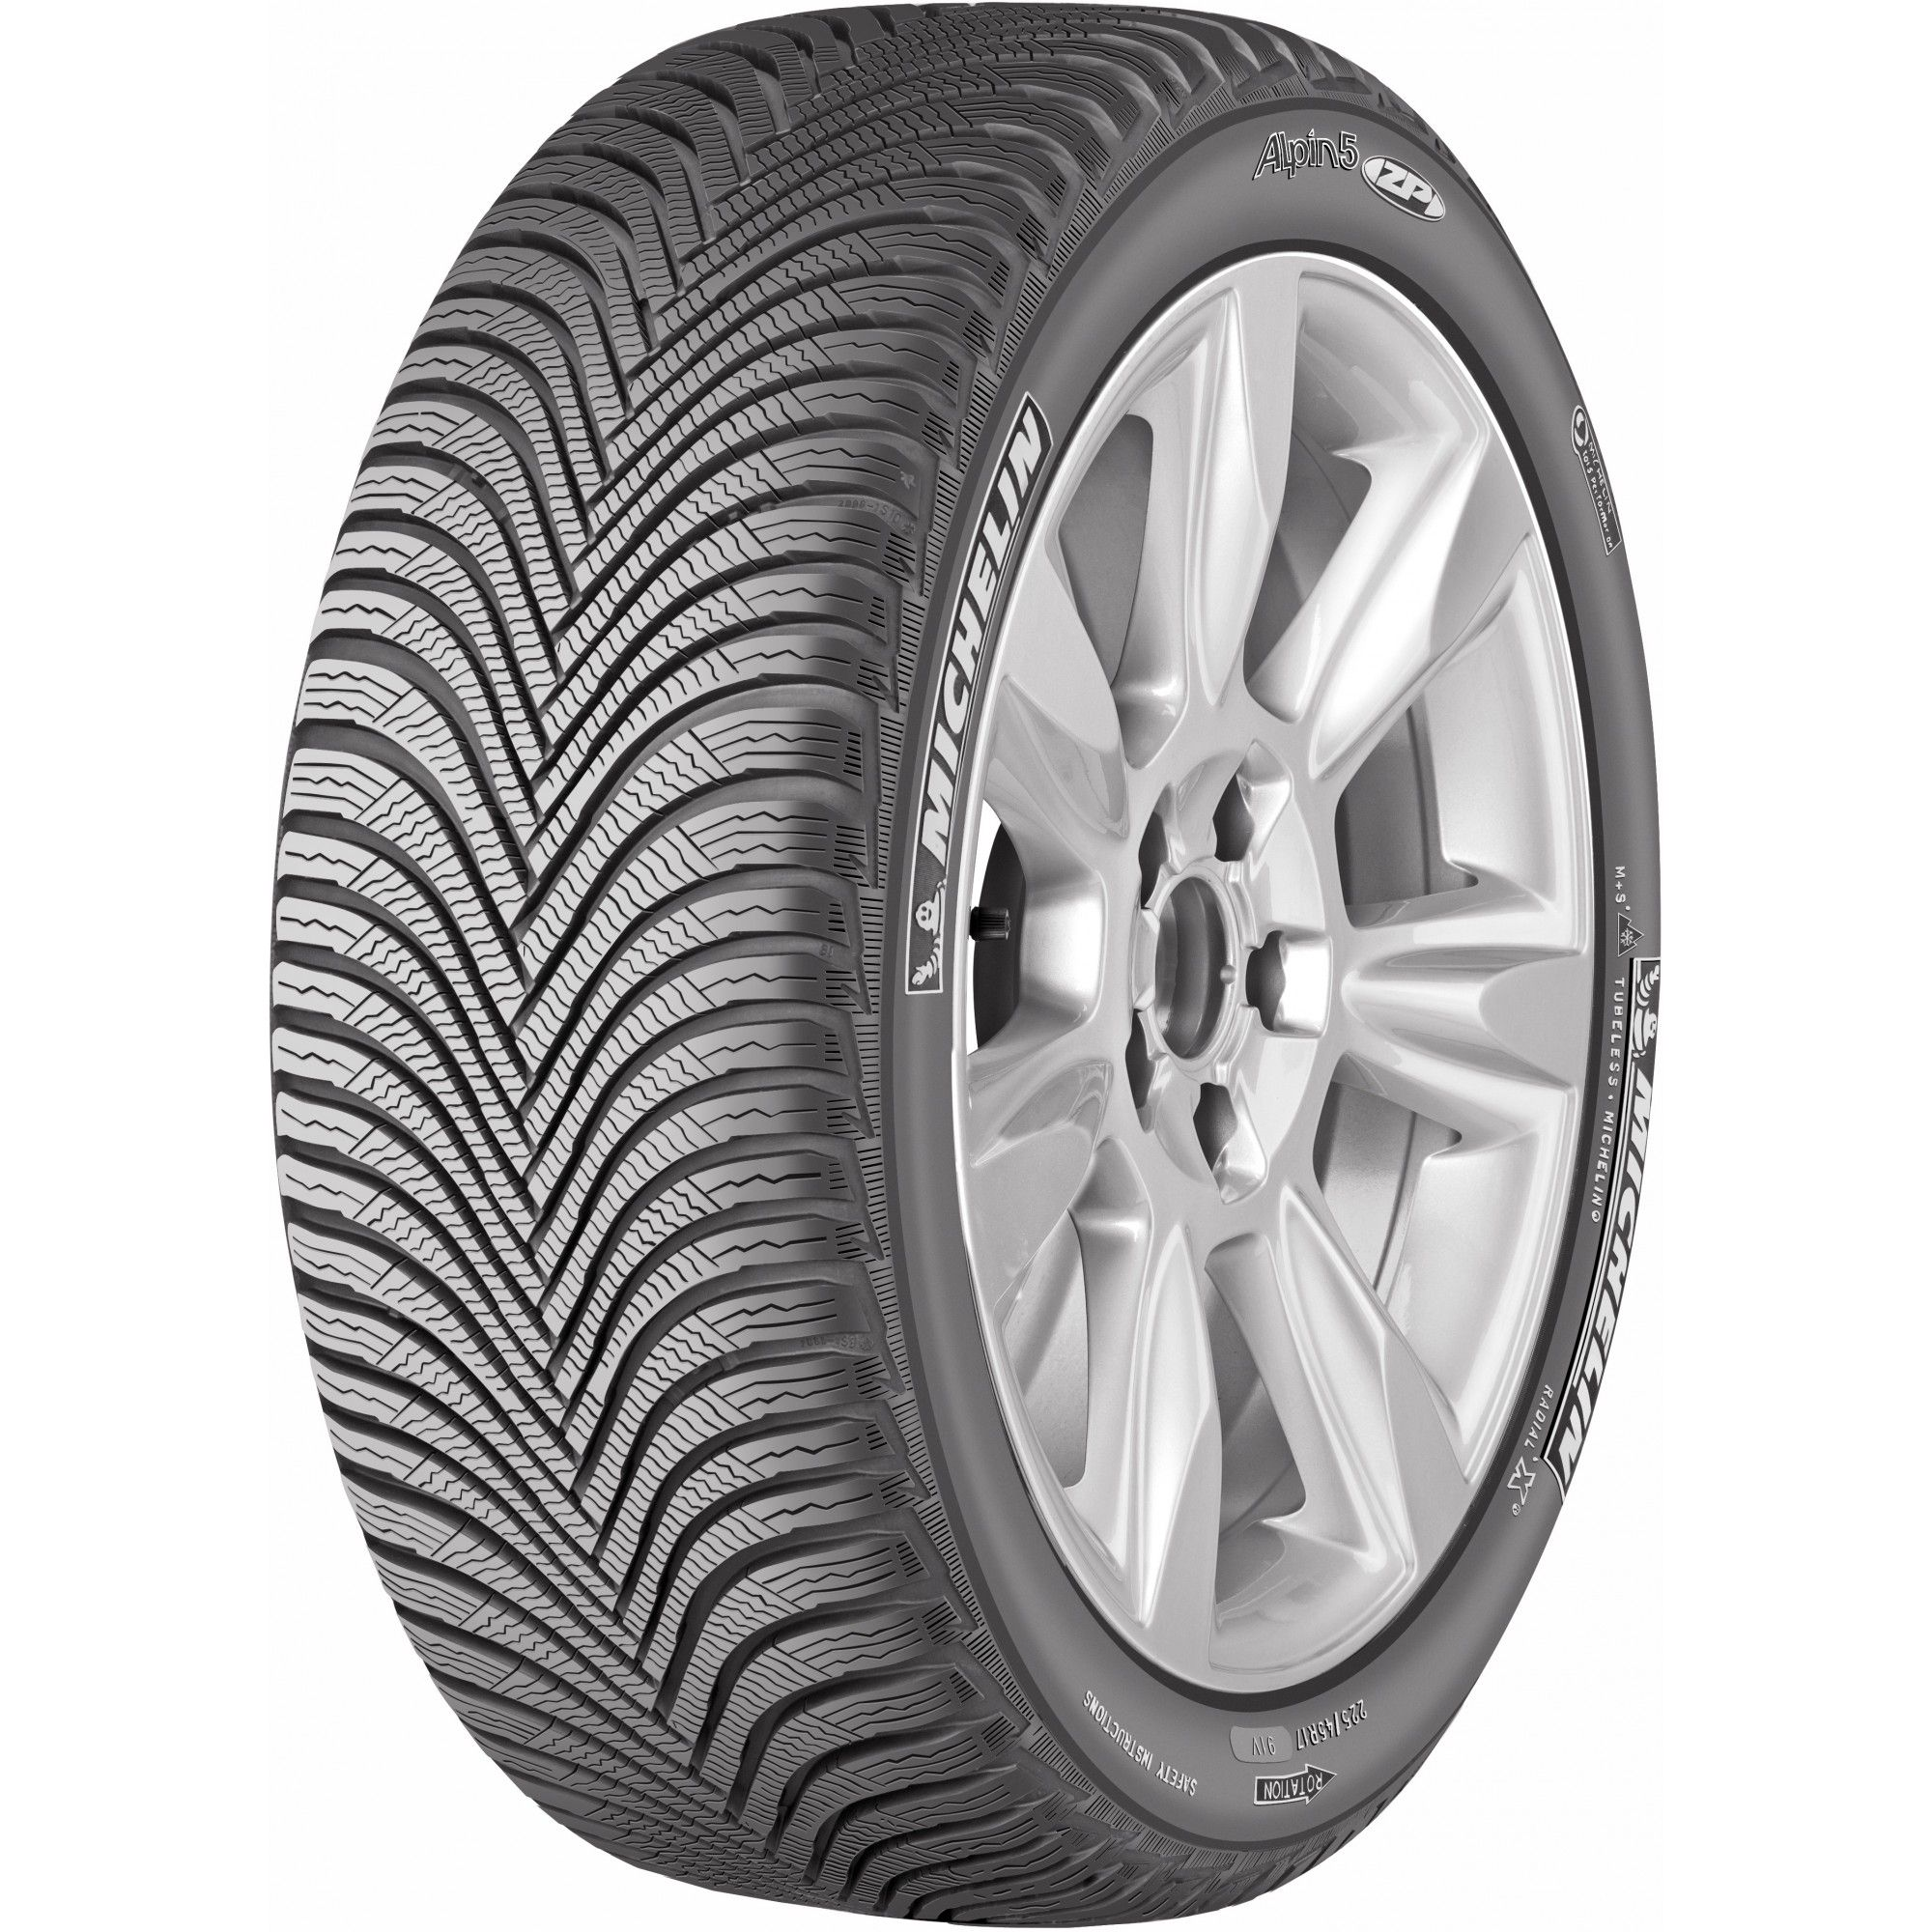 Зимняя шина Michelin Alpin 5 205/55 R17 91H RF